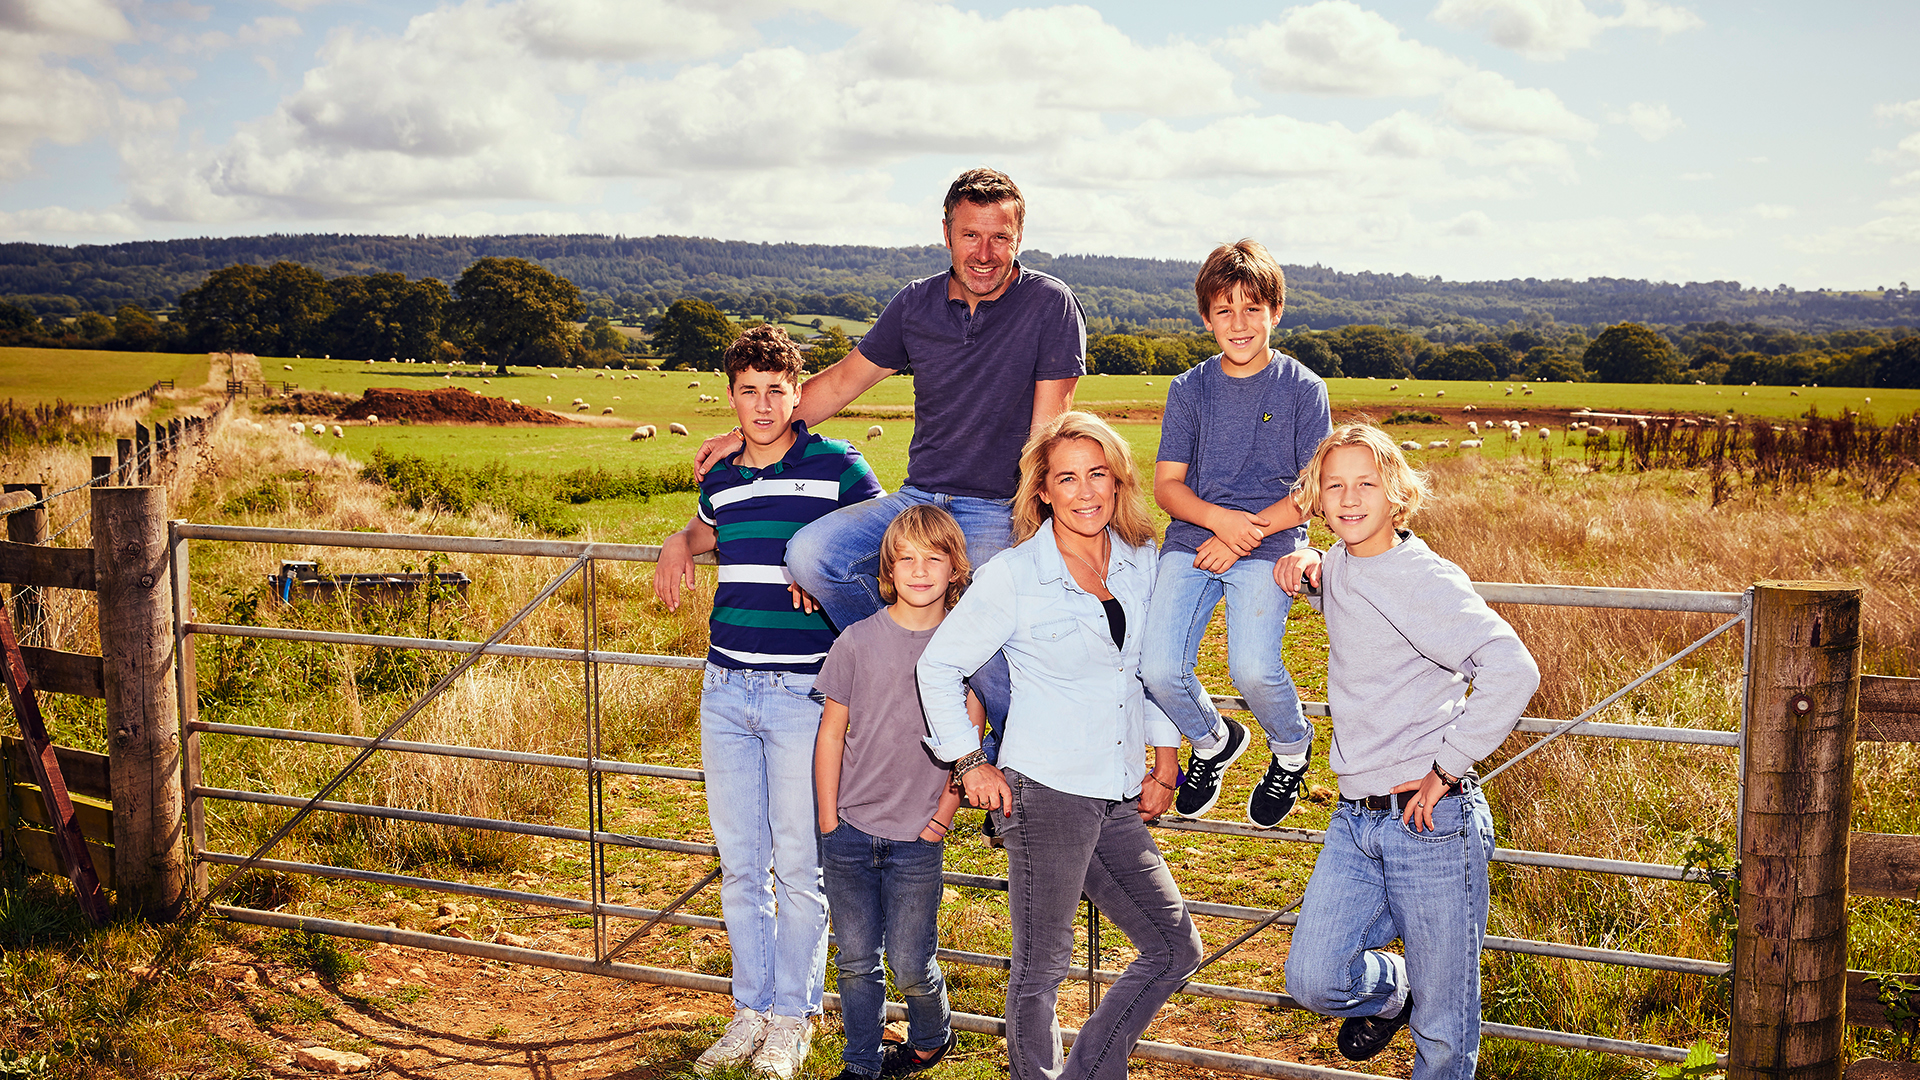 Sarah Beeny's New Life in the Country